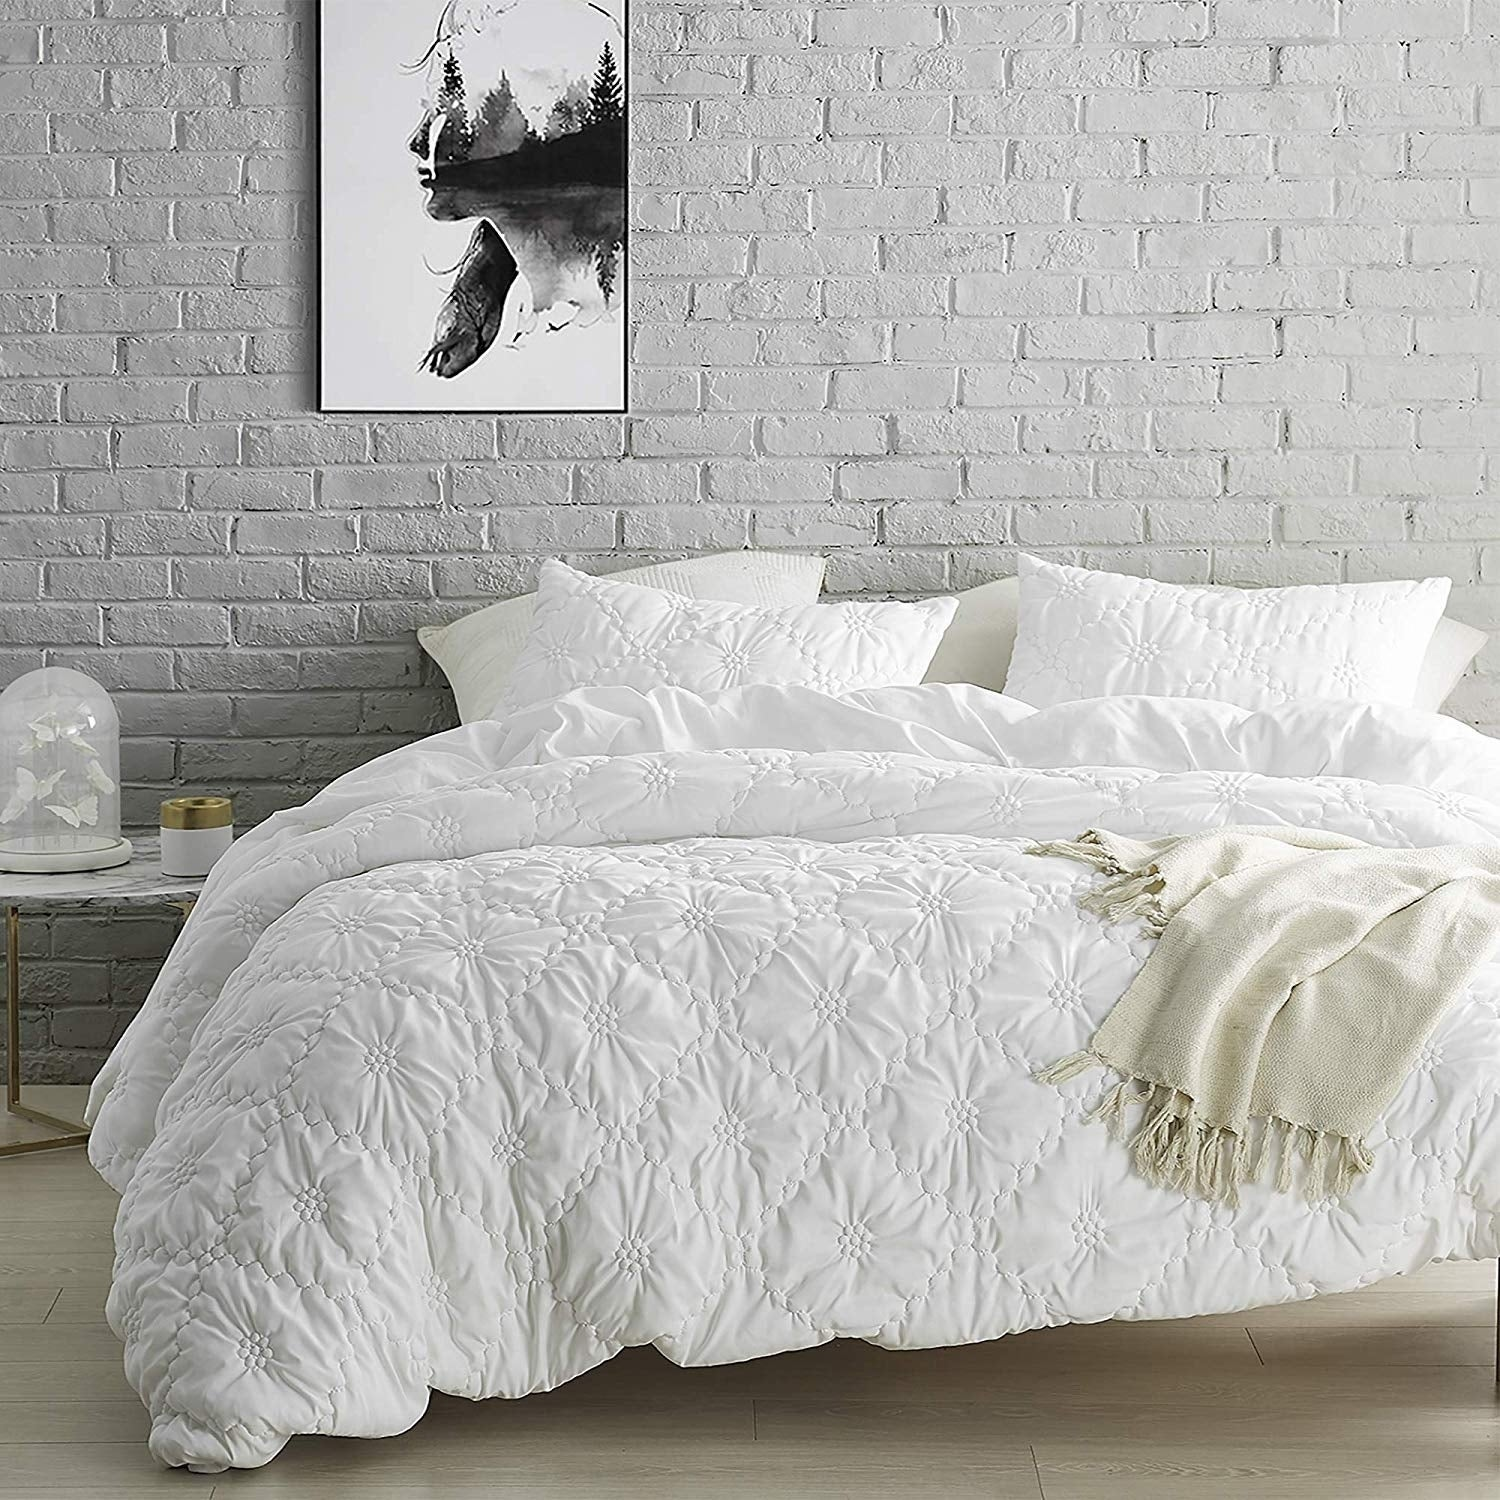 Farmhouse Morning Textured Bedding Duvet Cover Overstock 27663012